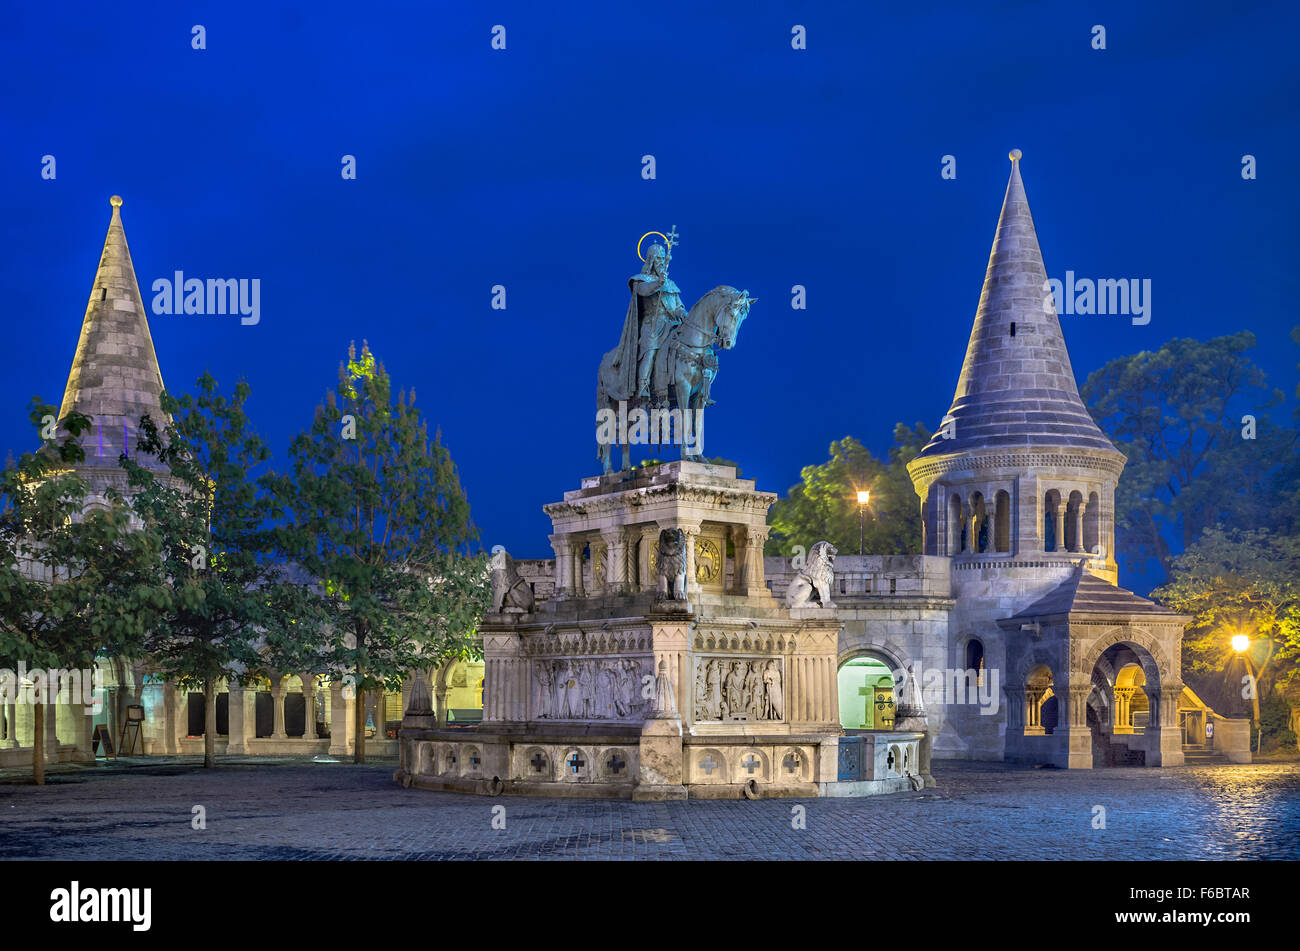 Hungary, Budapest, statue of the King St. Stephen at the Fishermen's Bastion. - Stock Image